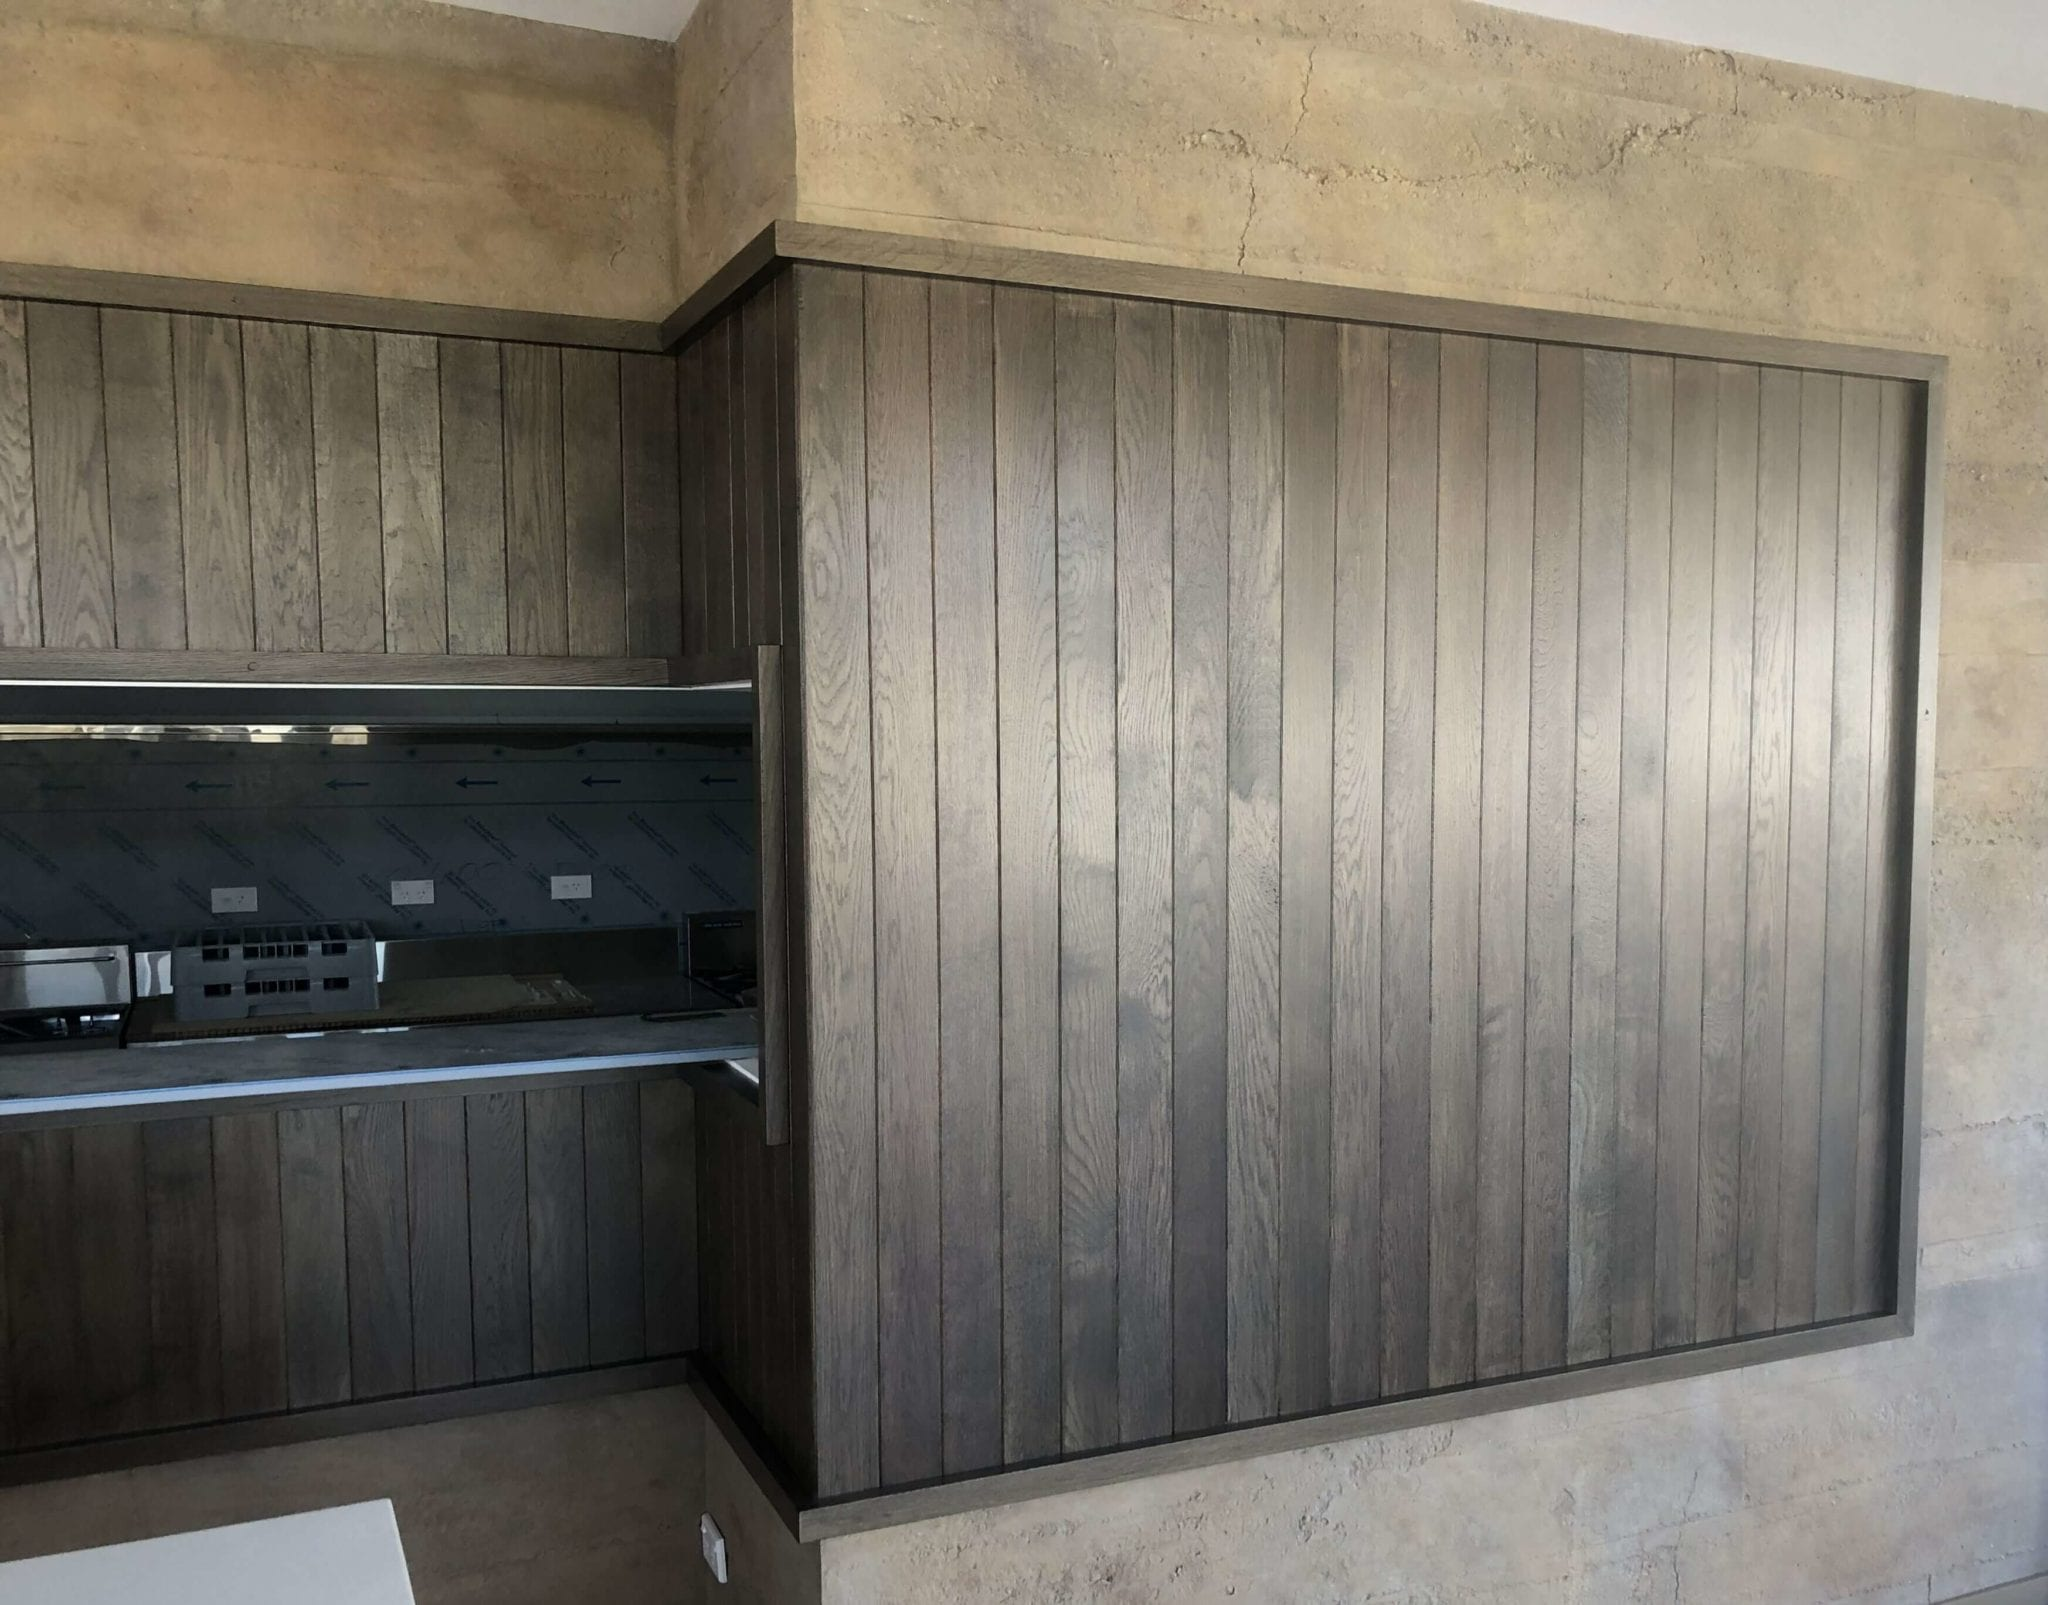 Kitchen Design And Ideas For Bespoke Kitchens Using Muros Wall Panels